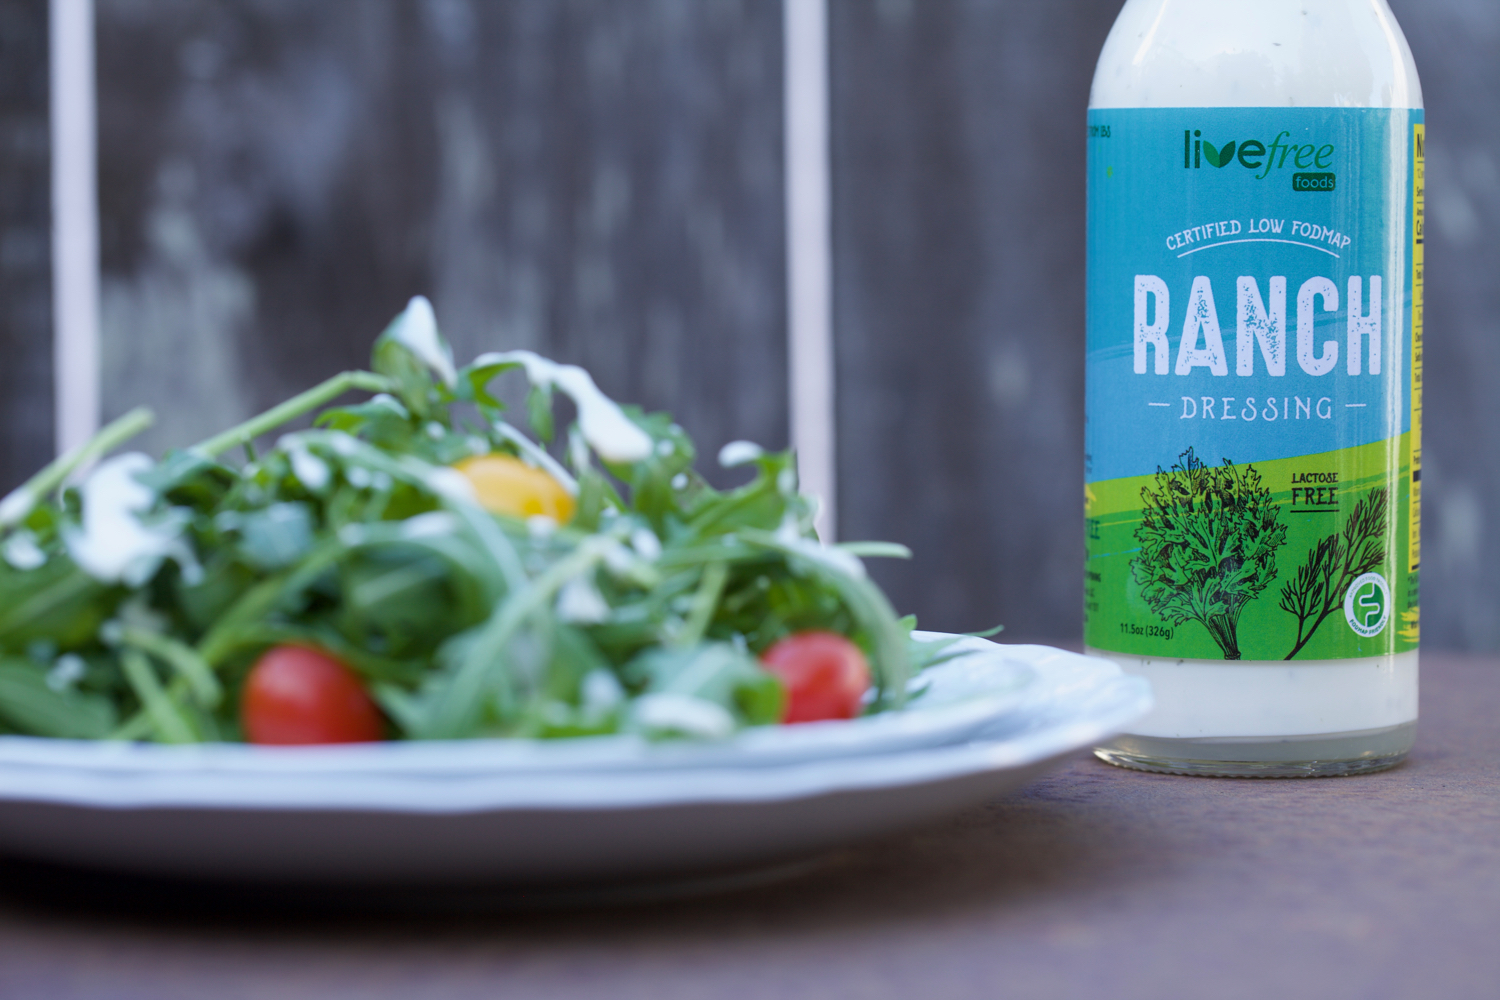 Photo of Live Free Foods Ranch Dressing with Arugula Salad by Posh Belly's Kitchen